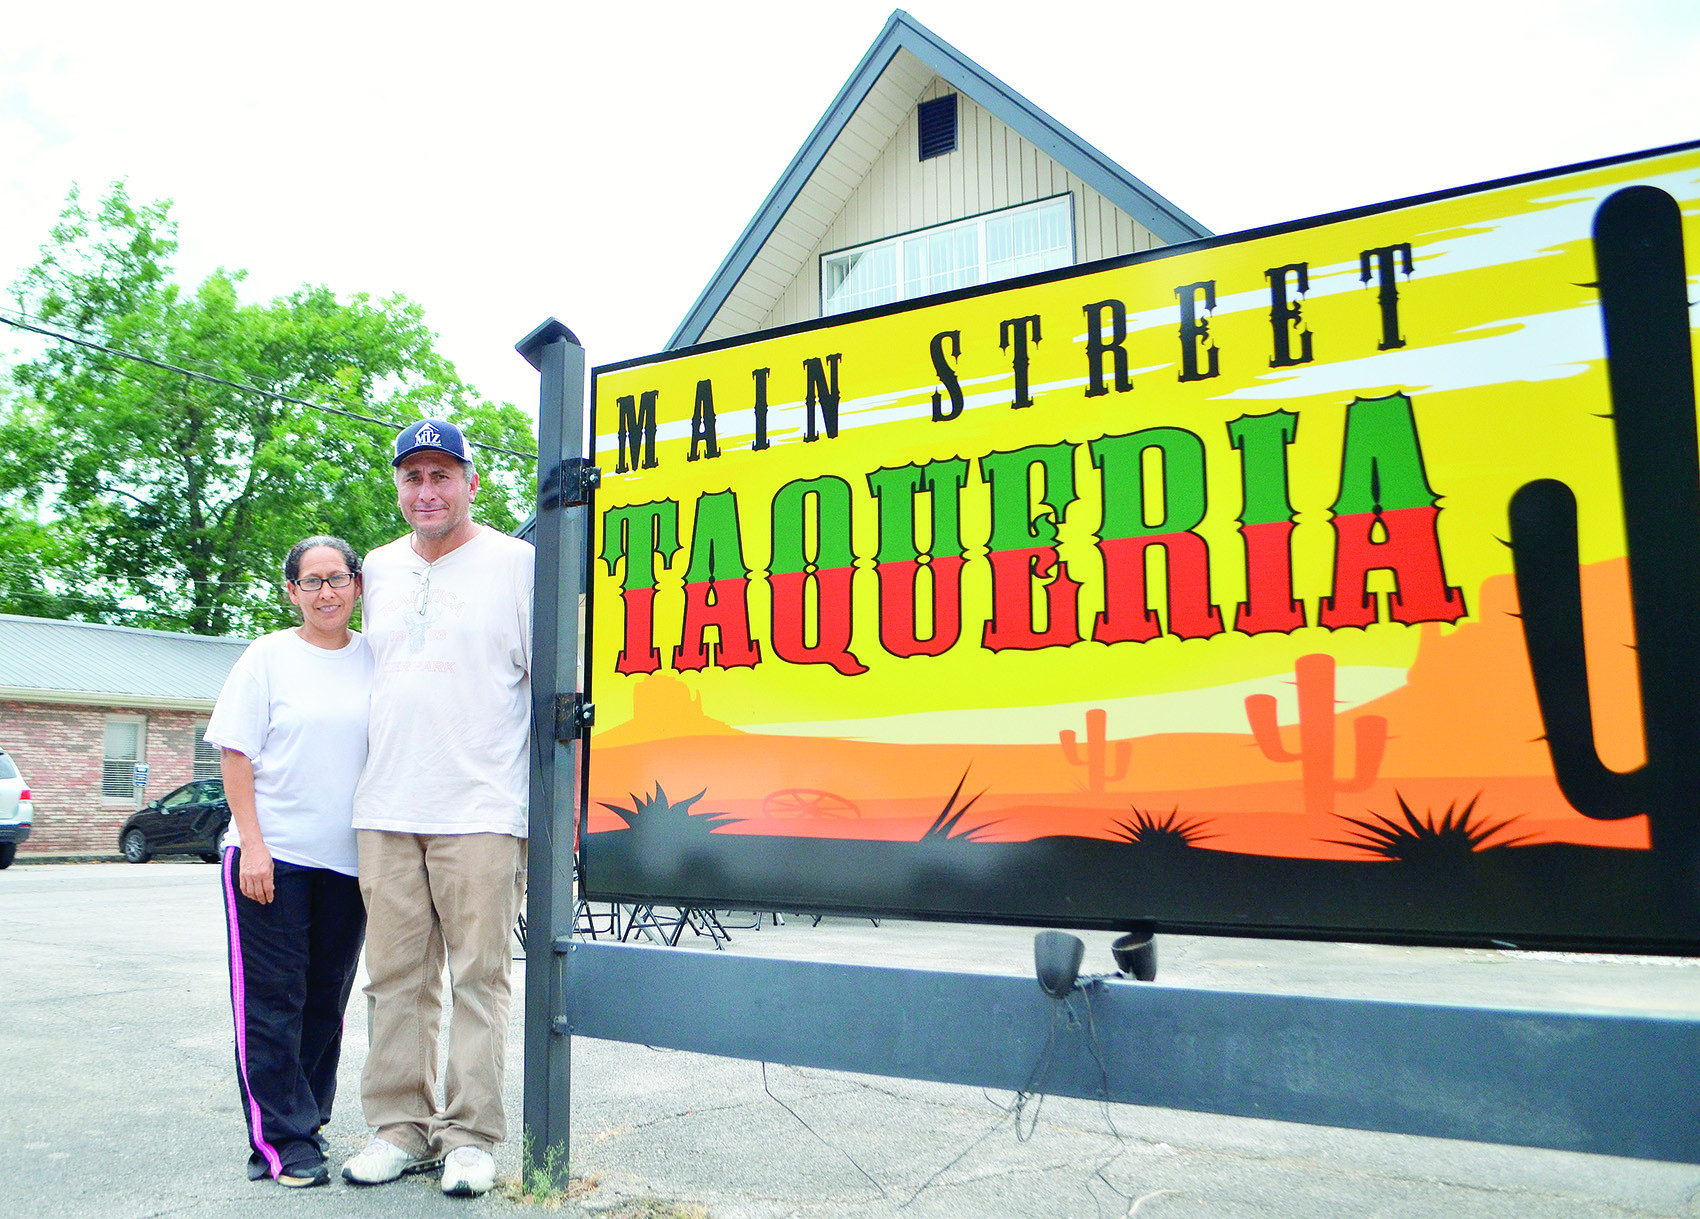 Saul and Maria Martinez have achieved their dream of opening a restaurant. Main Street Taqueria opened last Thursday to a steady stream of customers.